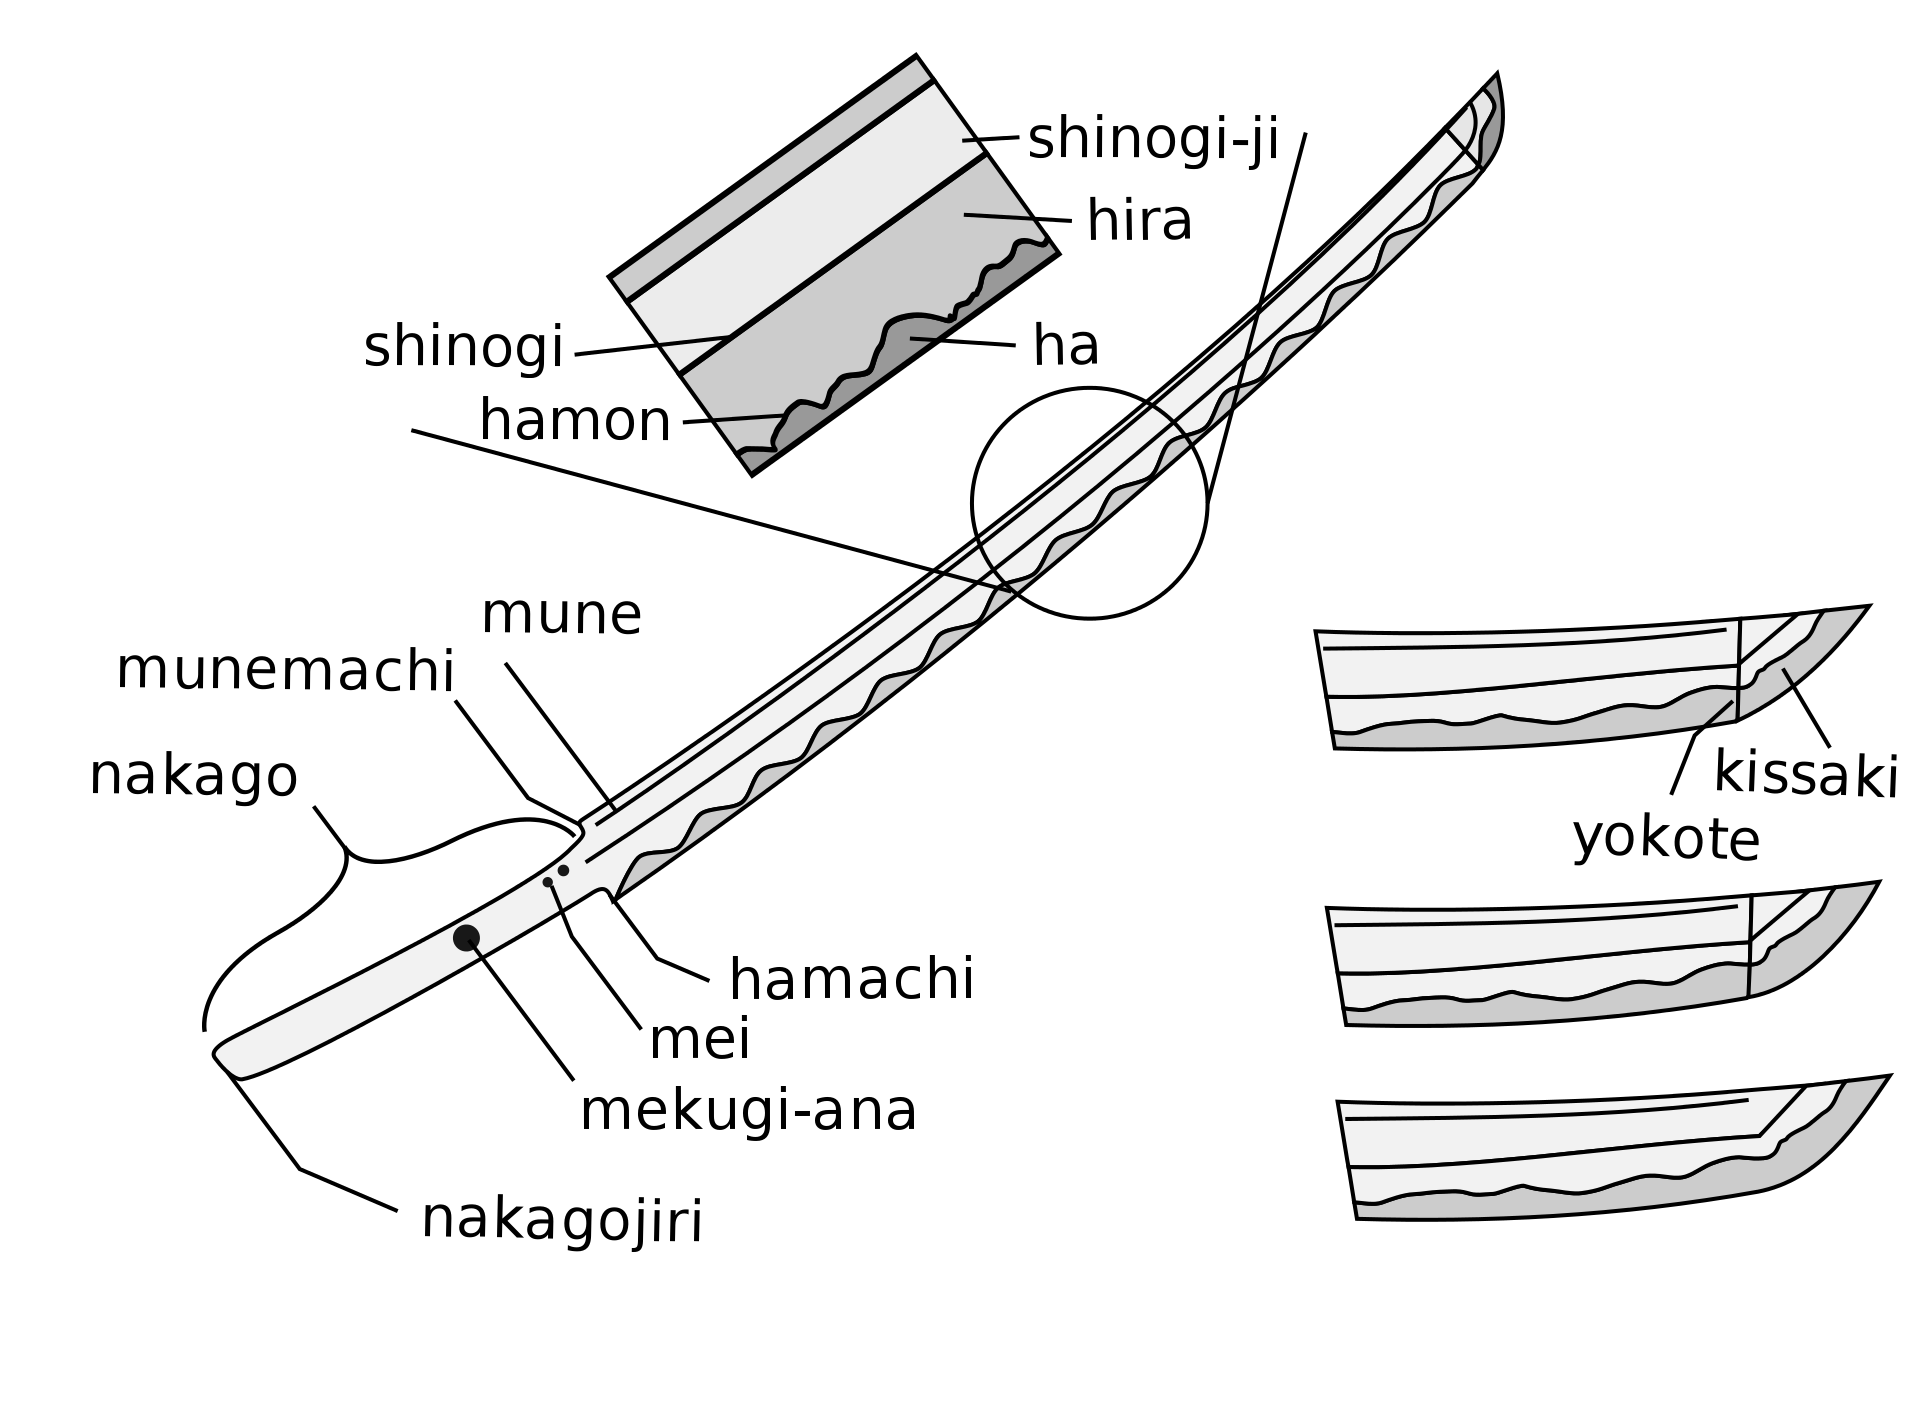 Diagram Showing The Parts Of A Nihont Blade In